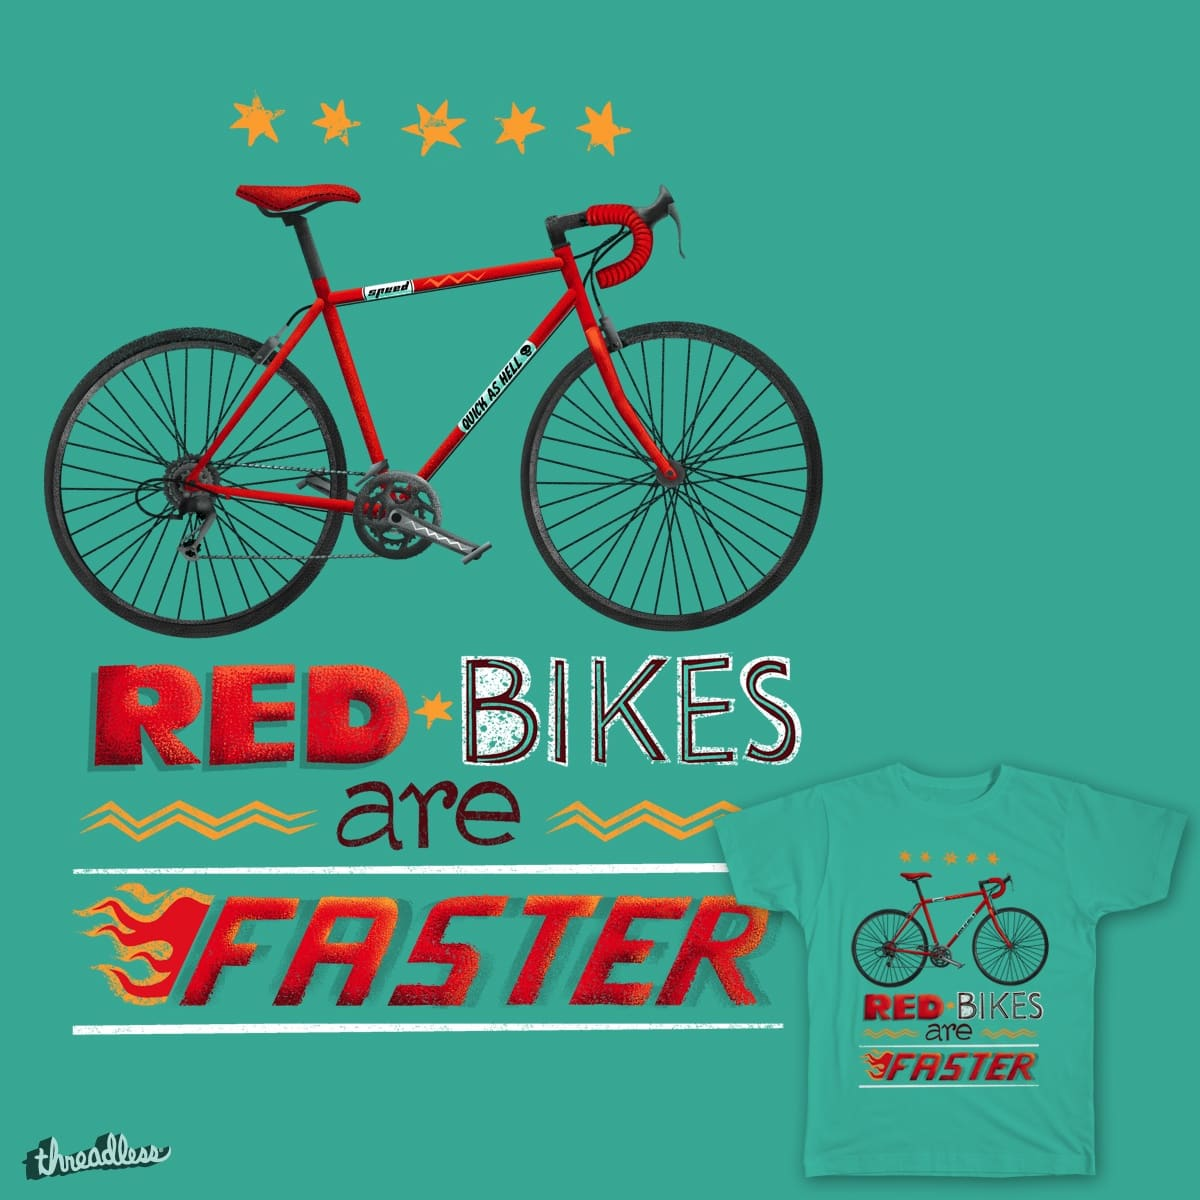 Red bikes are faster by deadsquirrel on Threadless